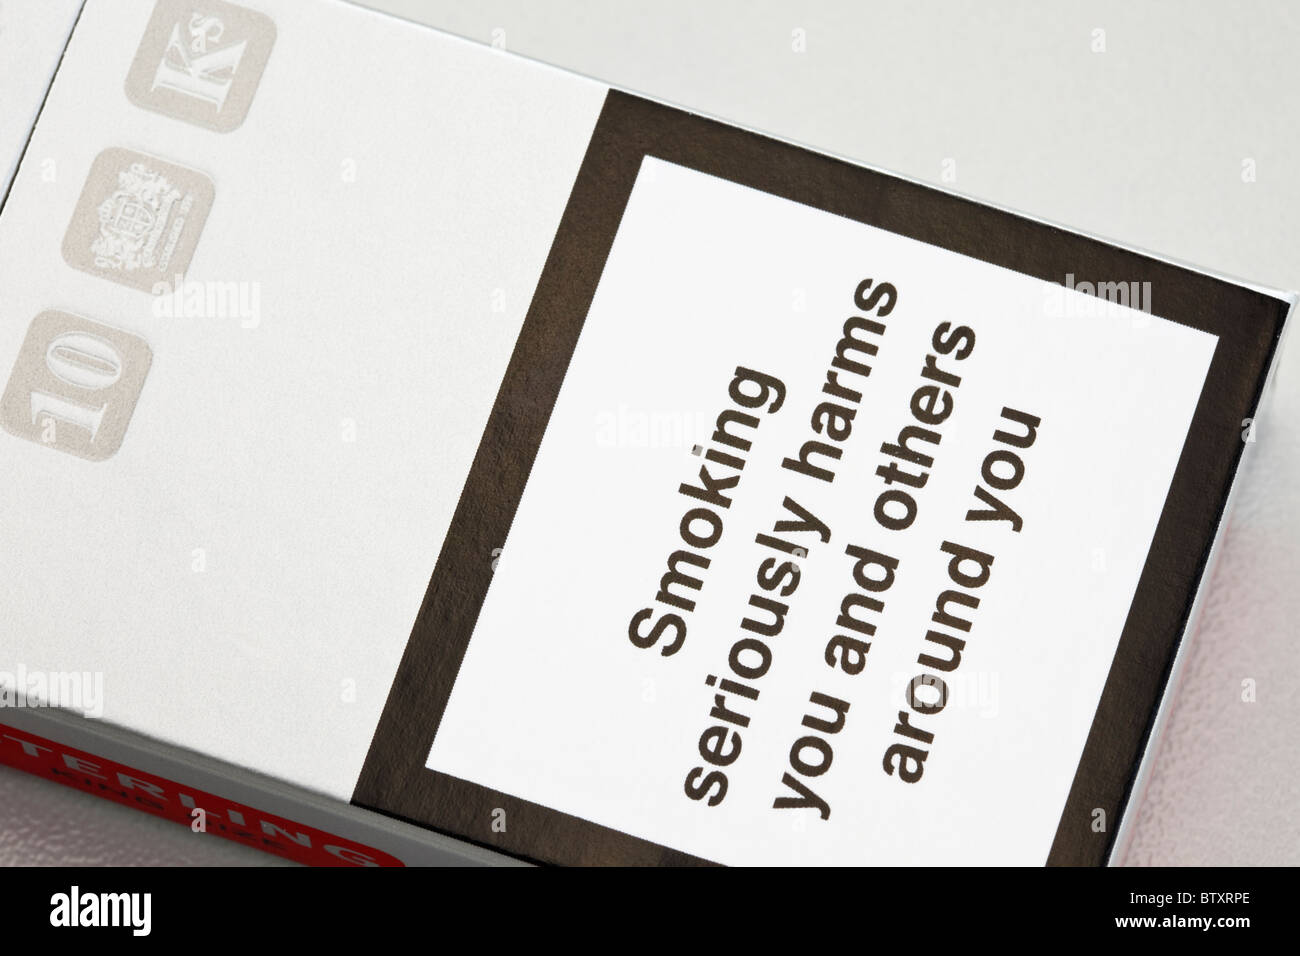 Health warning on a cigarette packet 'Smoking seriously harms you and others around you' England UK - Stock Image